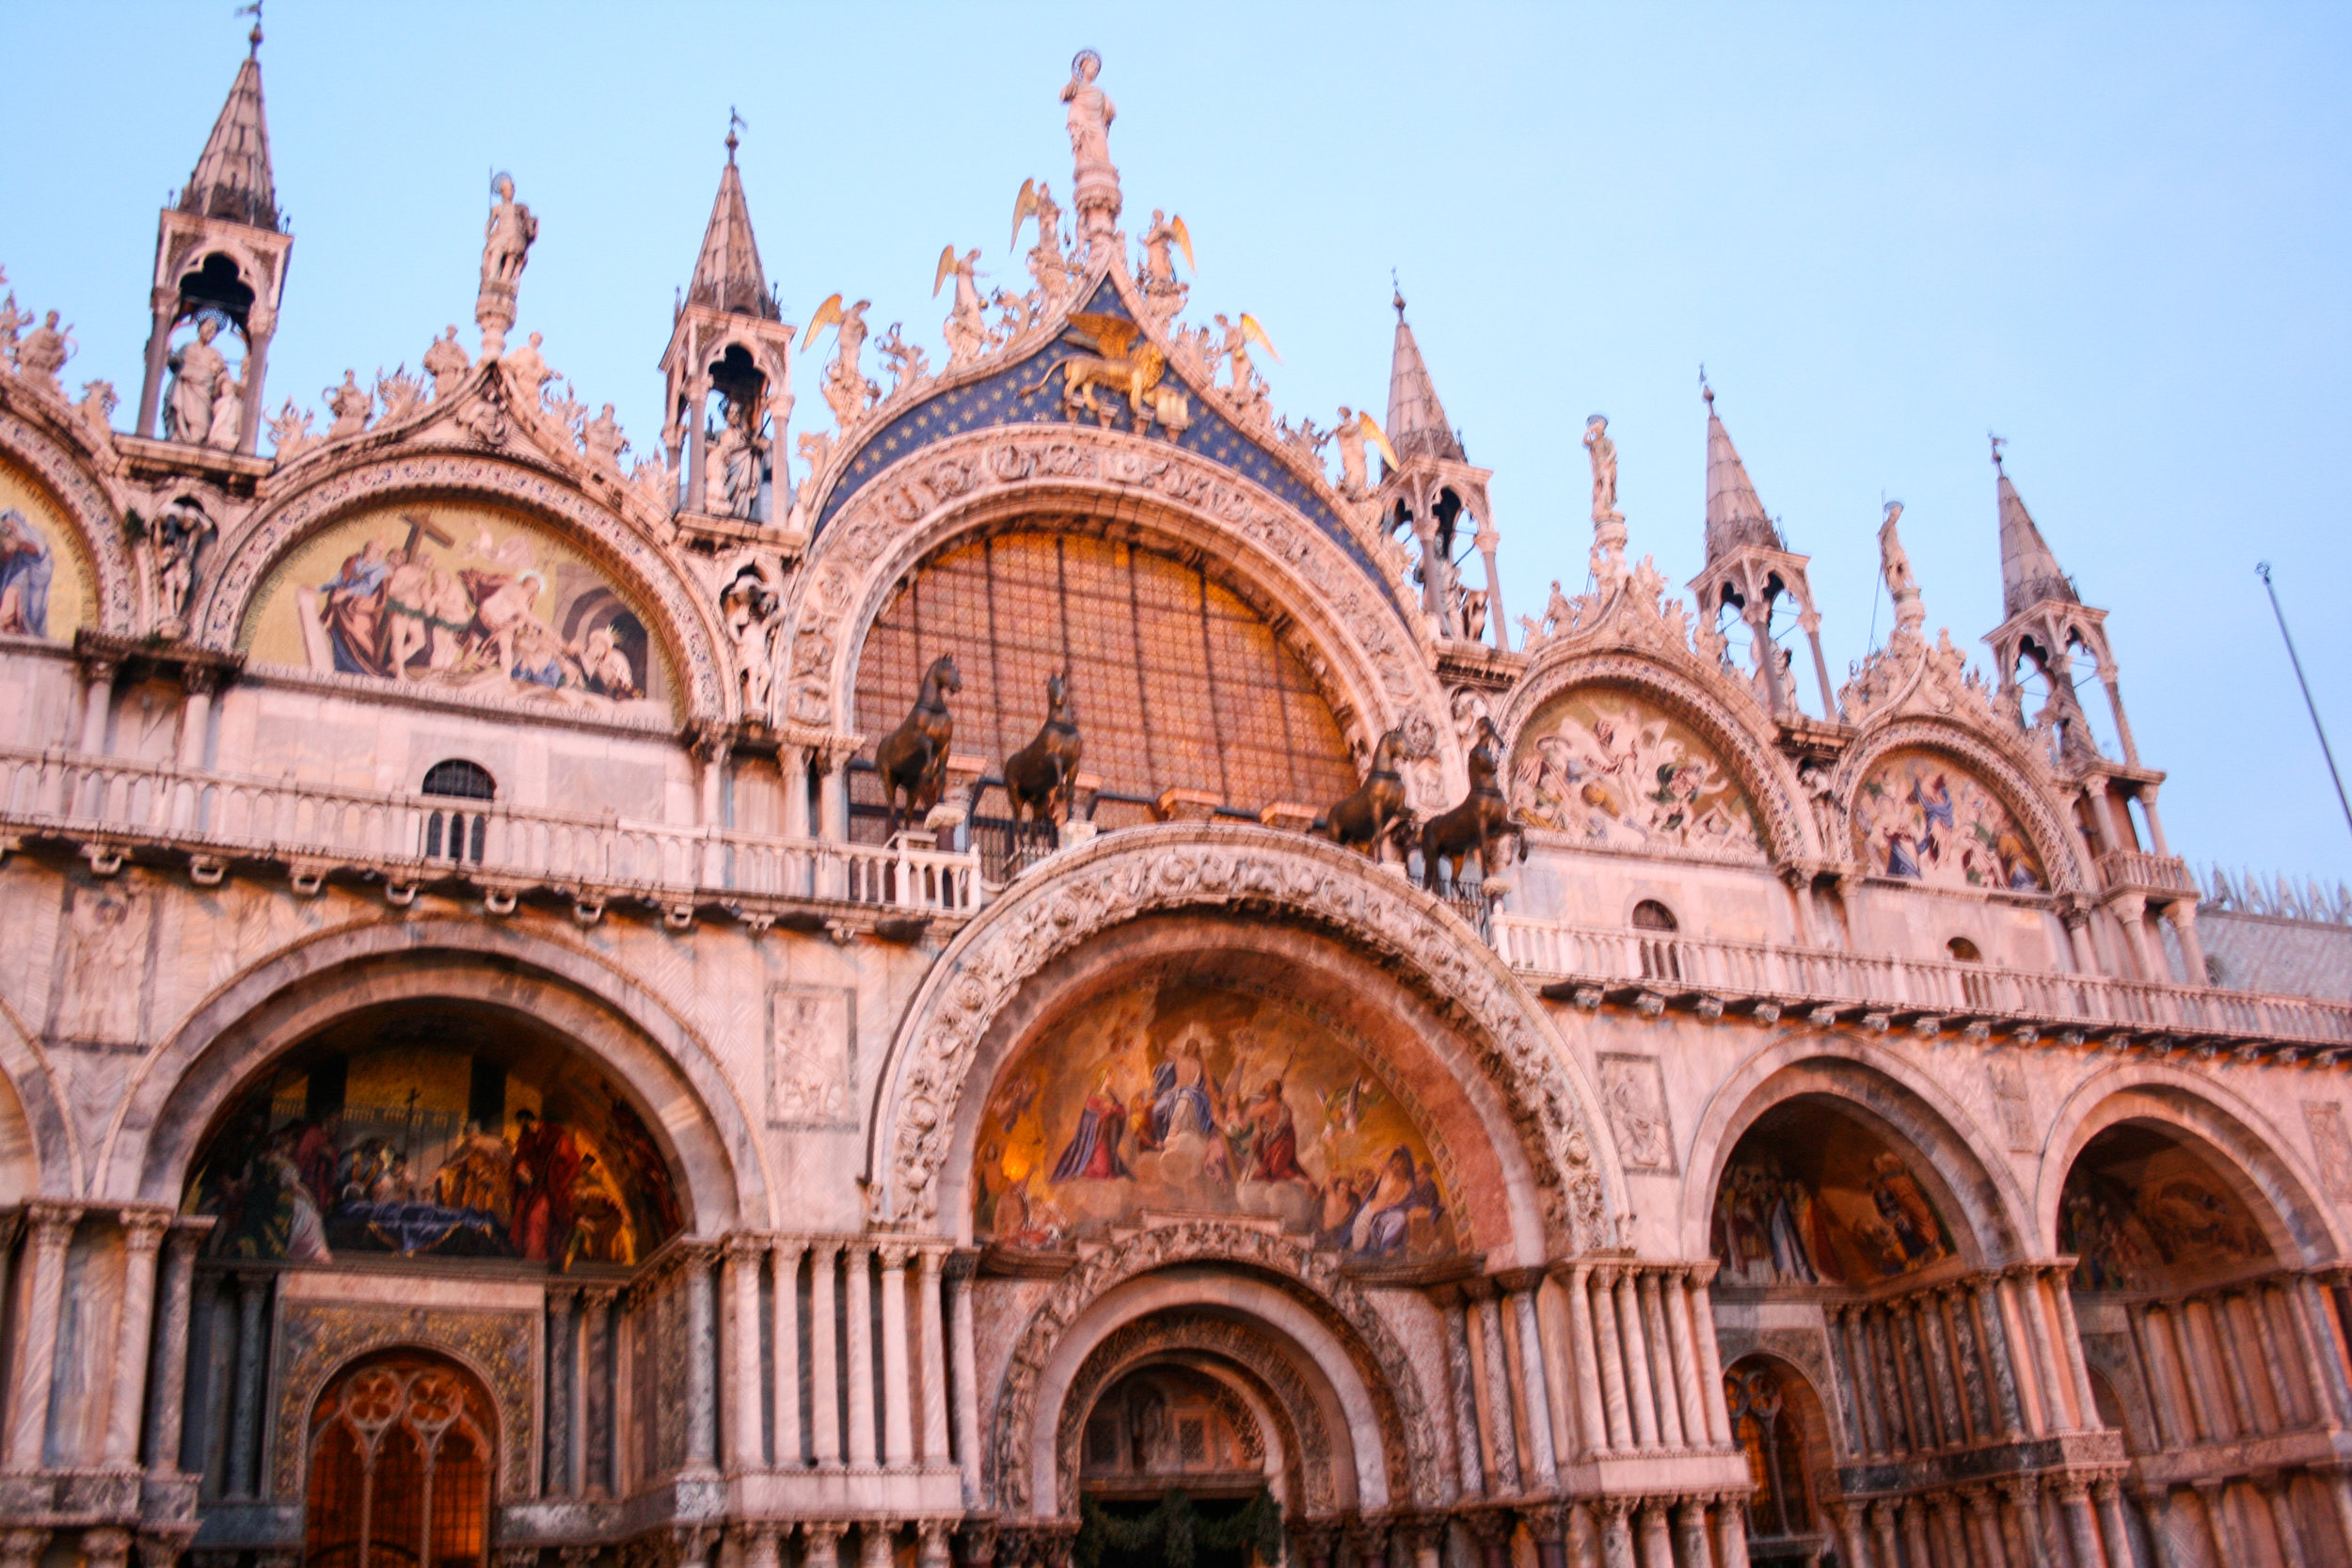 The mosaics and four golden horses at the entrance of San Marco